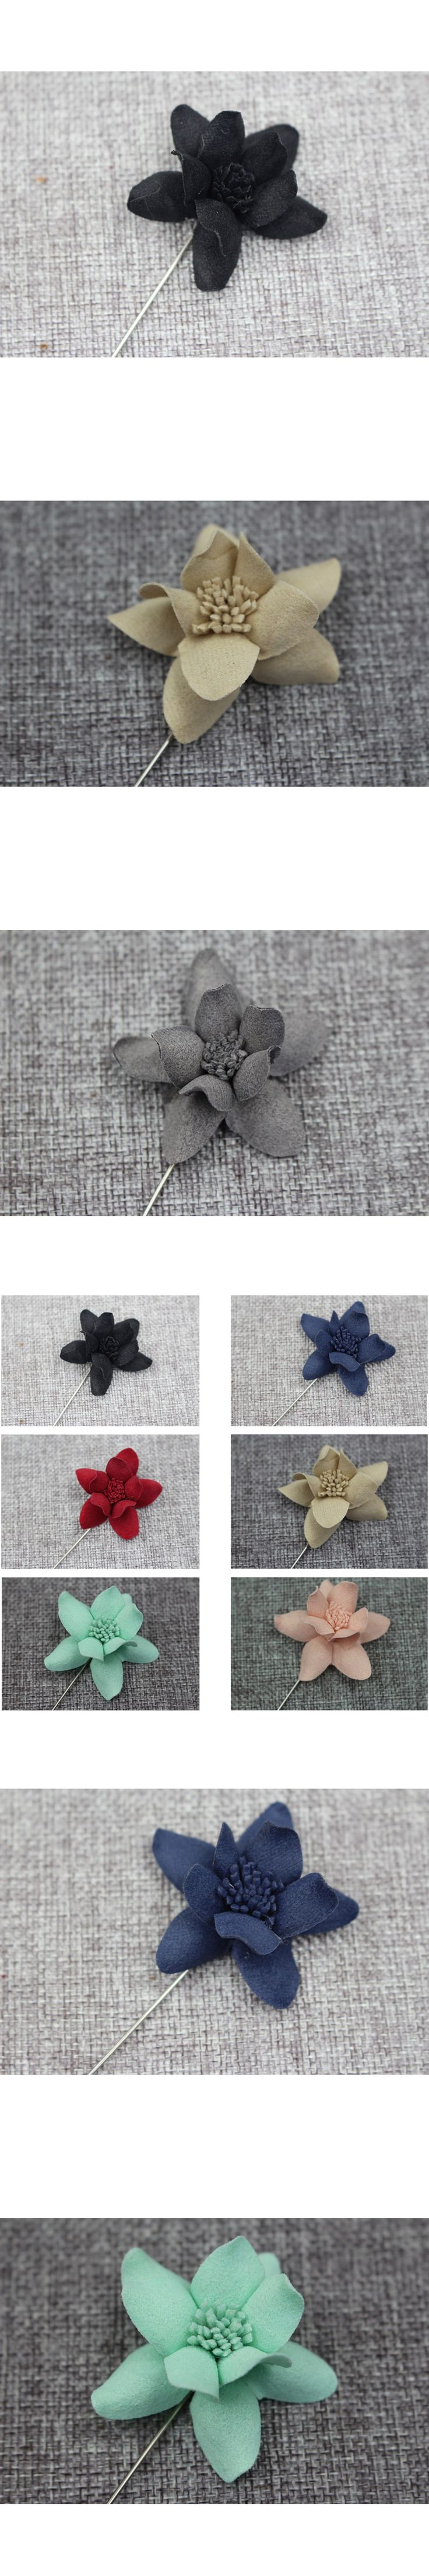 Men Women Boutonniere Stick Wedding Lapel Pin Flower Brooches Suits Tuxedo Decor BWTQN0020